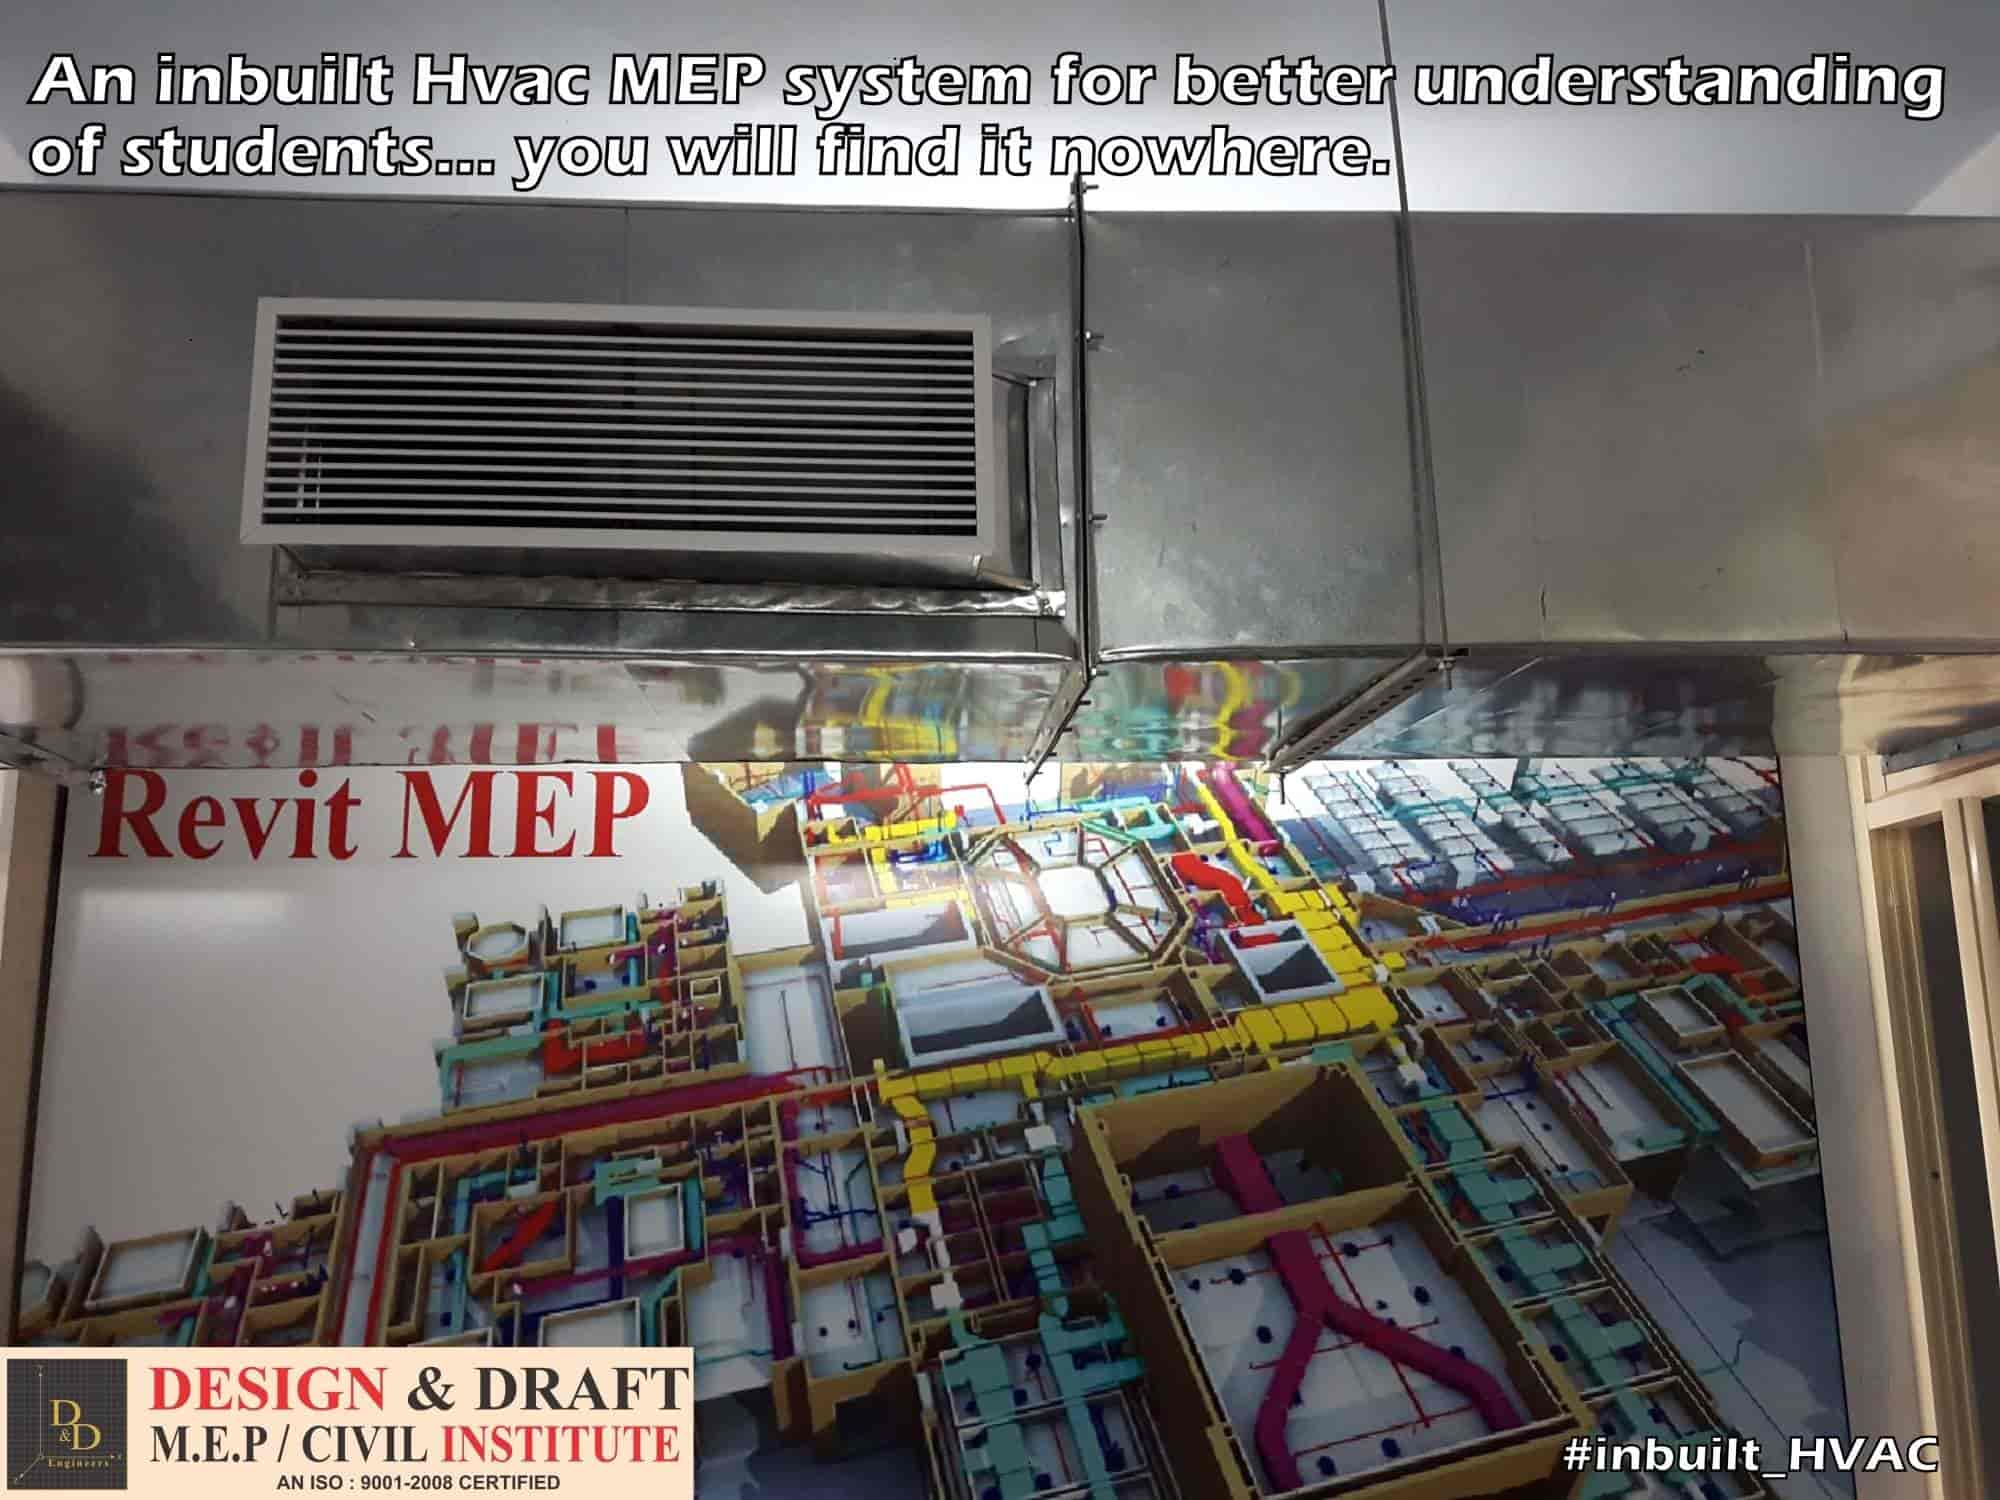 Design Draft Mep Institute Osmanpura Computer Training Hvac Drawing Autocad 2008 Institutes In Aurangabad Maharashtra Justdial